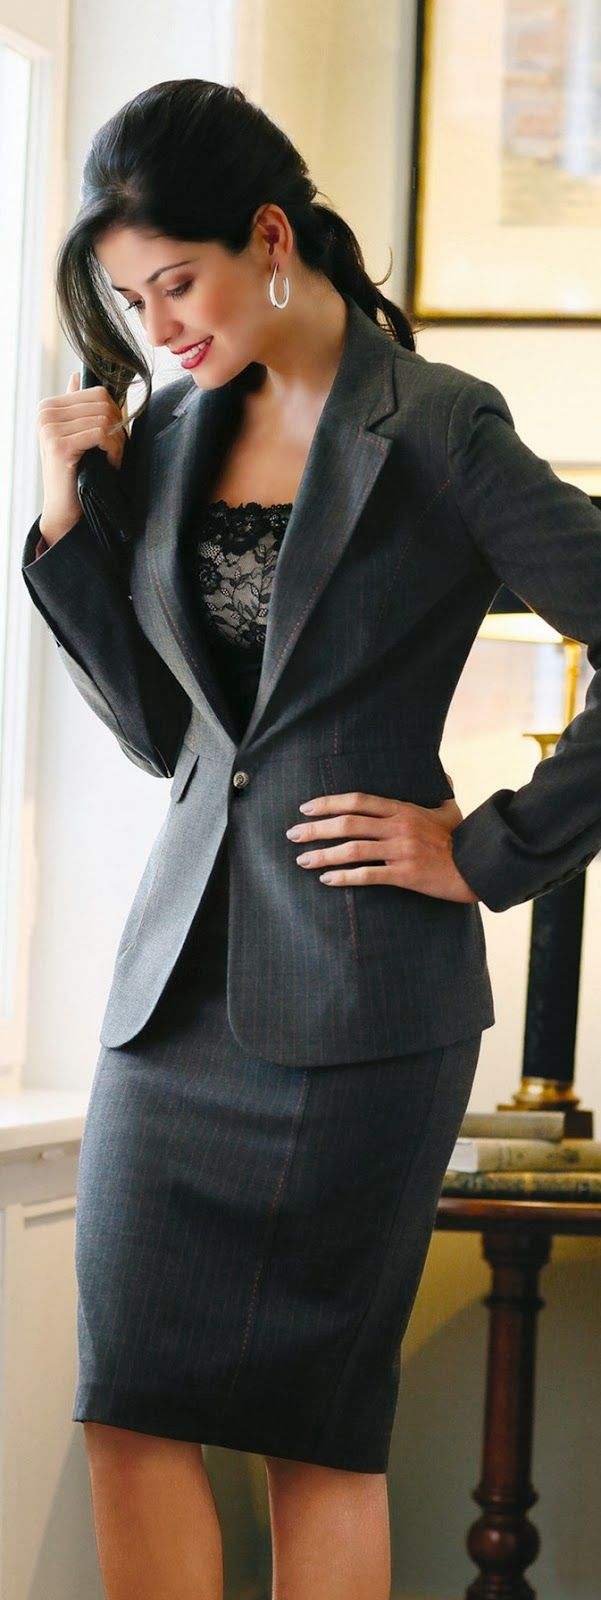 25  best ideas about Business professional attire women on ...